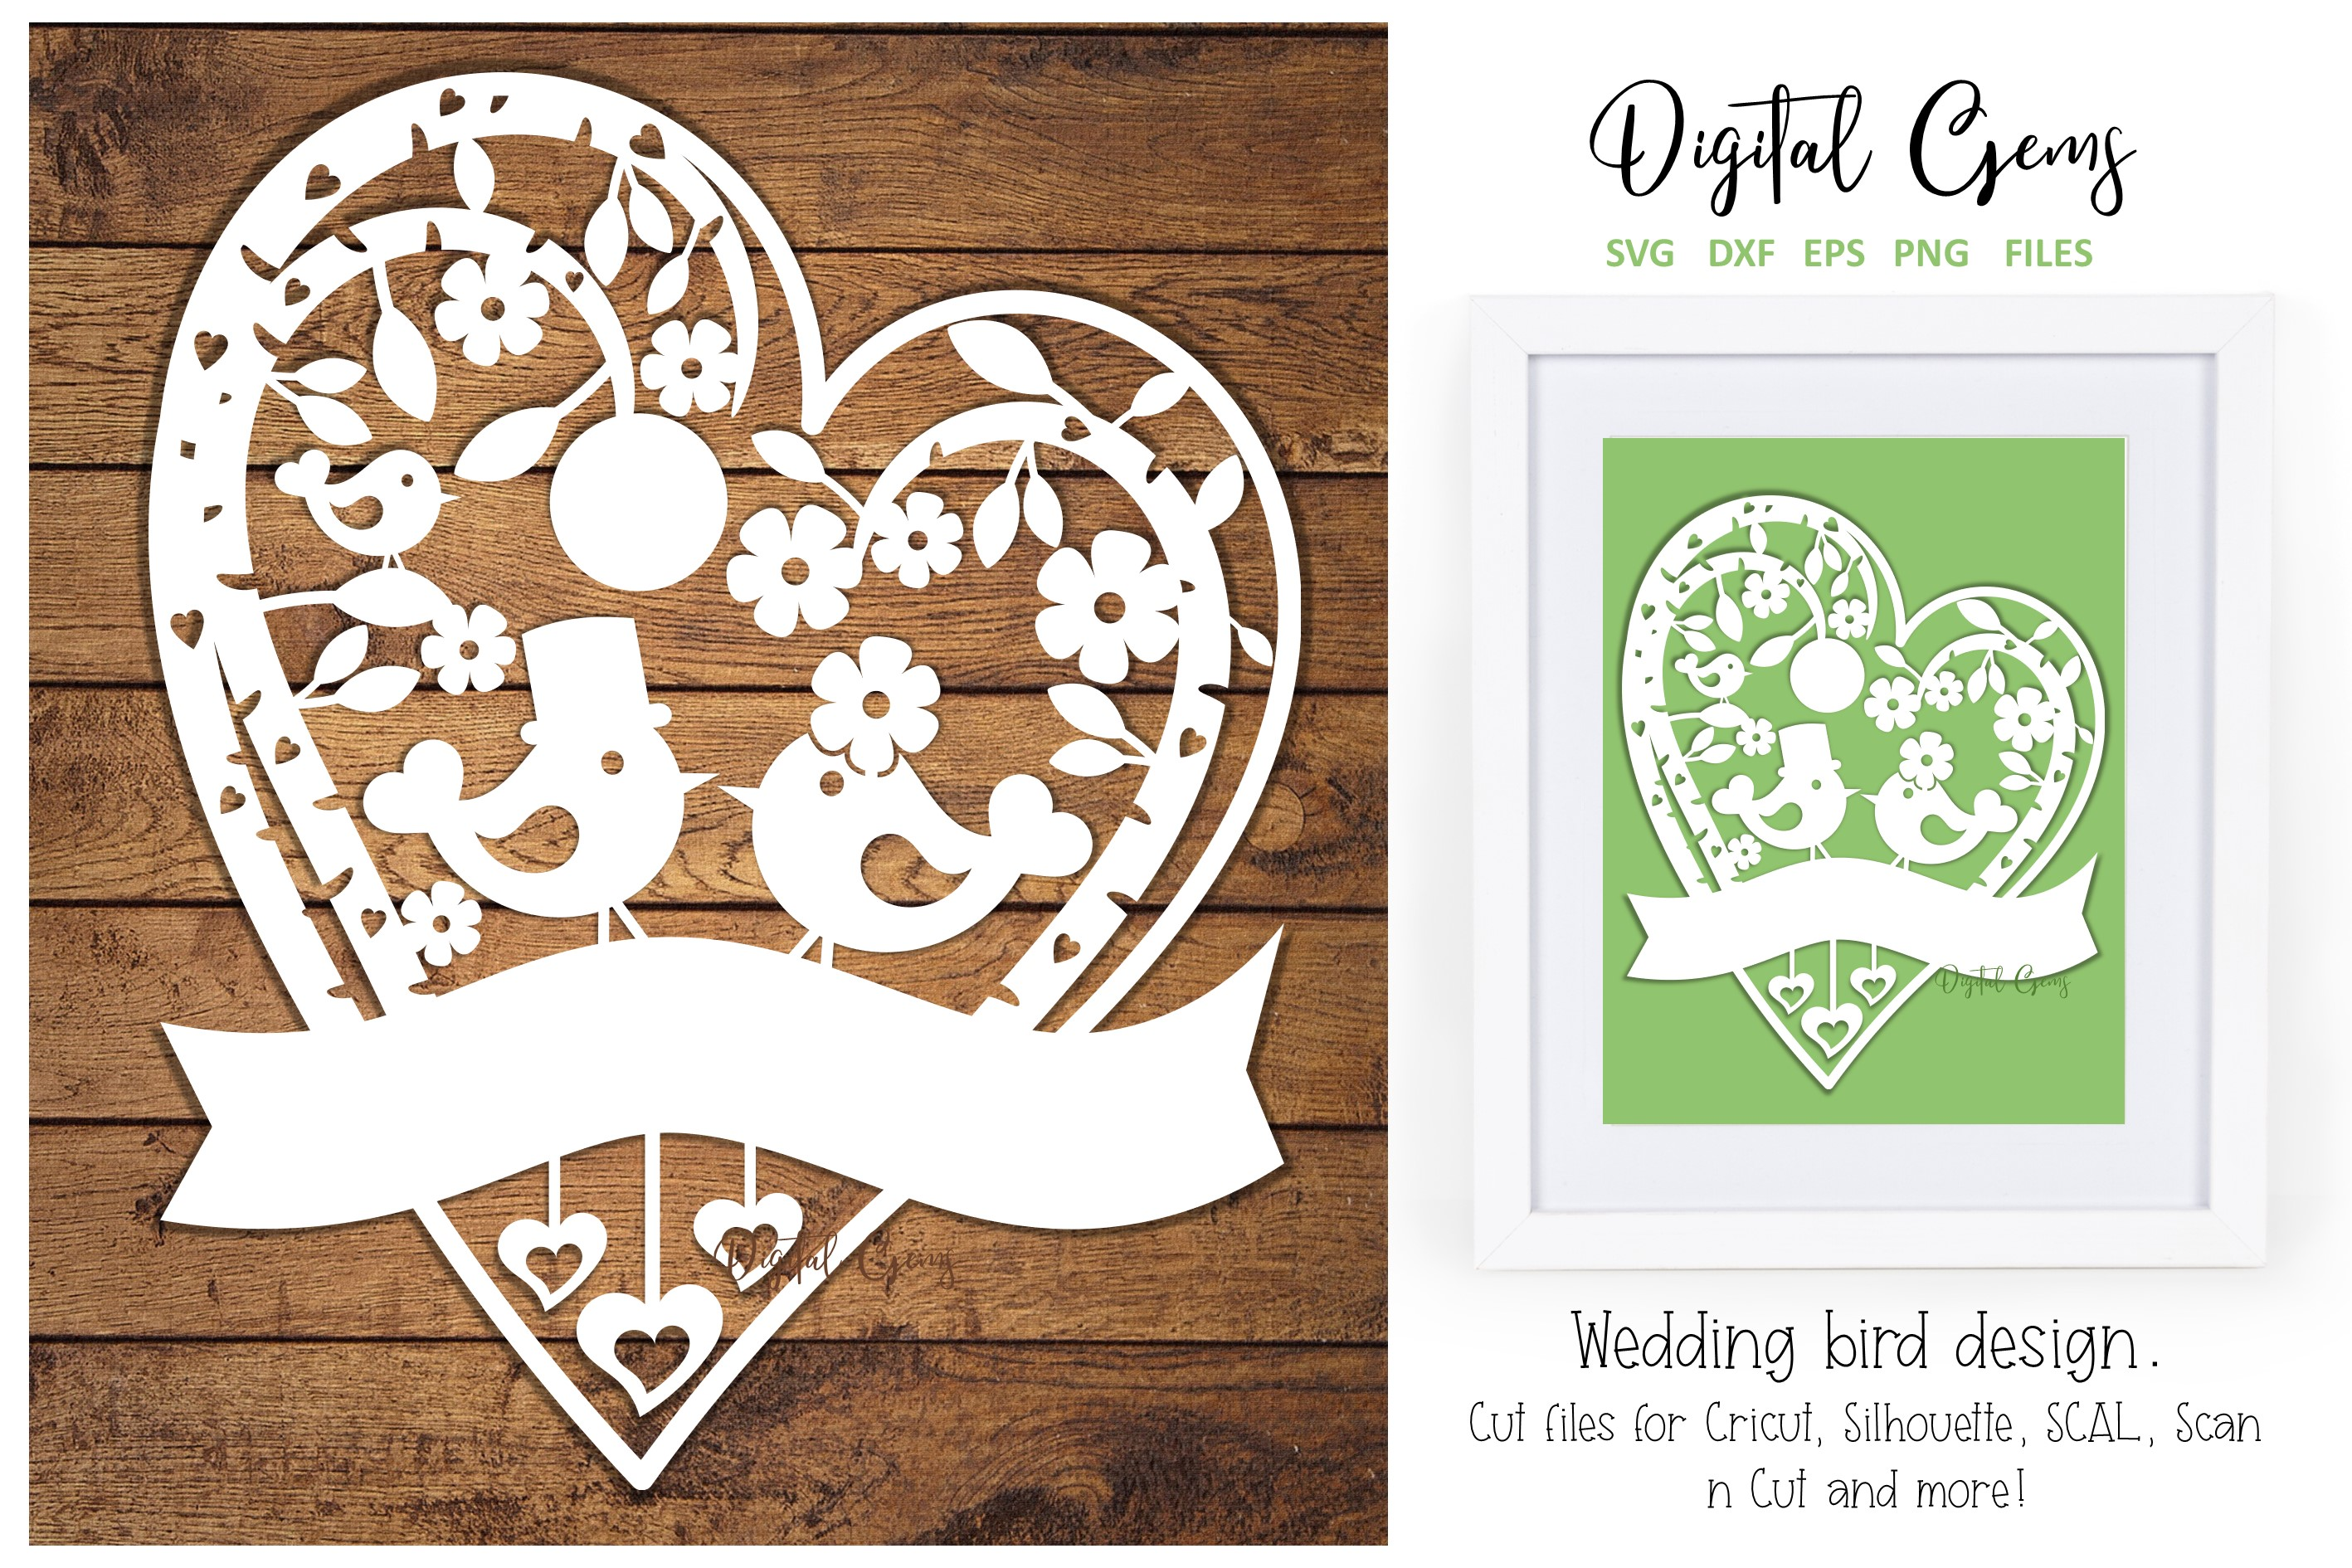 Download Free Wedding Bird Paper Cut Design Graphic By Digital Gems Creative Fabrica for Cricut Explore, Silhouette and other cutting machines.